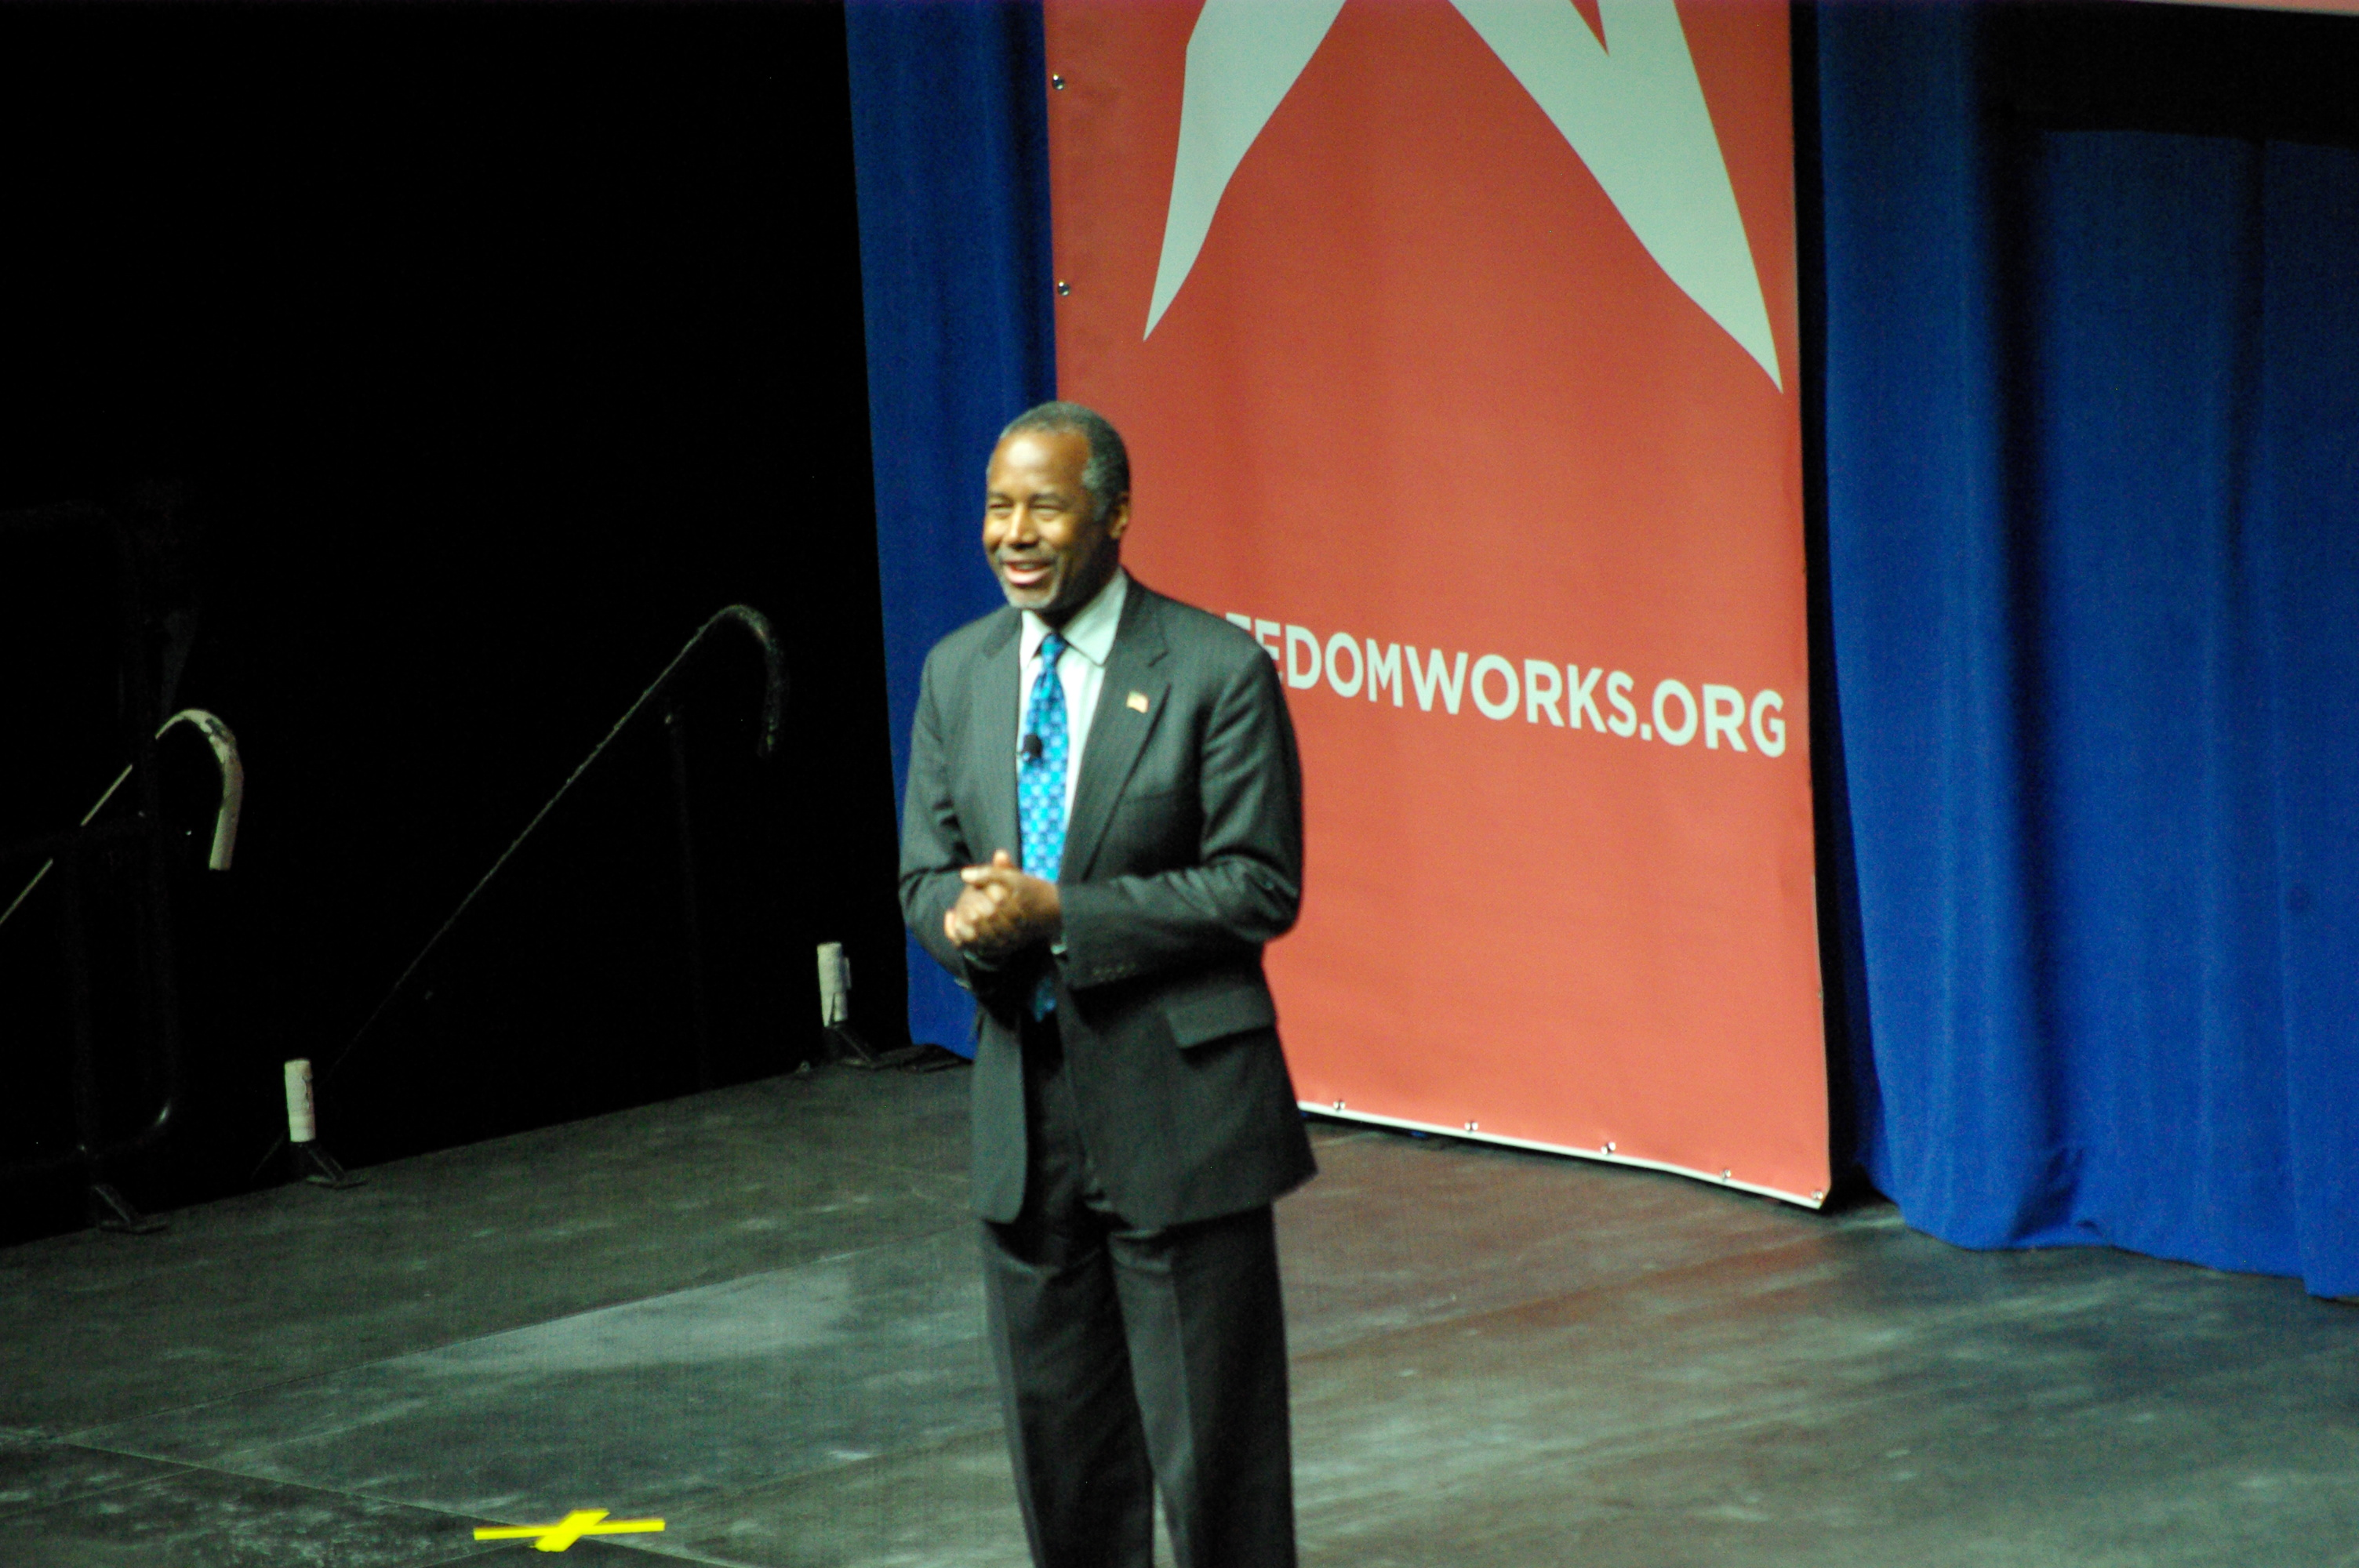 Dr. Ben Carson was met by an enthusiastic and appreciative crowd. Over 2,000 people participated in the Freedomworks Rising Tide Summit Saturday. -photo by Jeremy Griffith